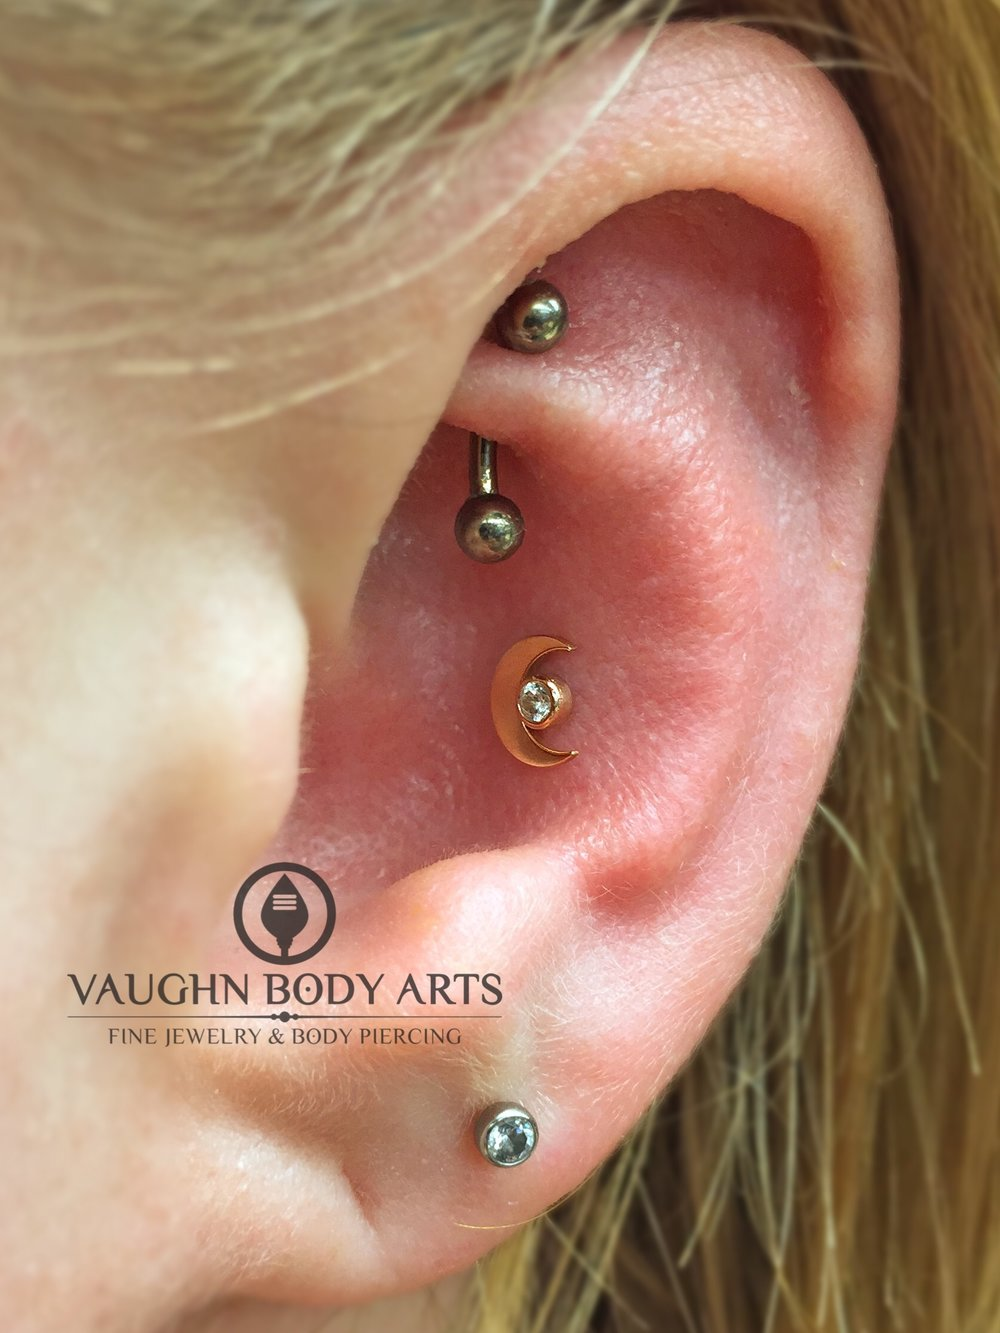 Conch piercing with an 18k yellow gold and cz crescent moon end from Anatometal.